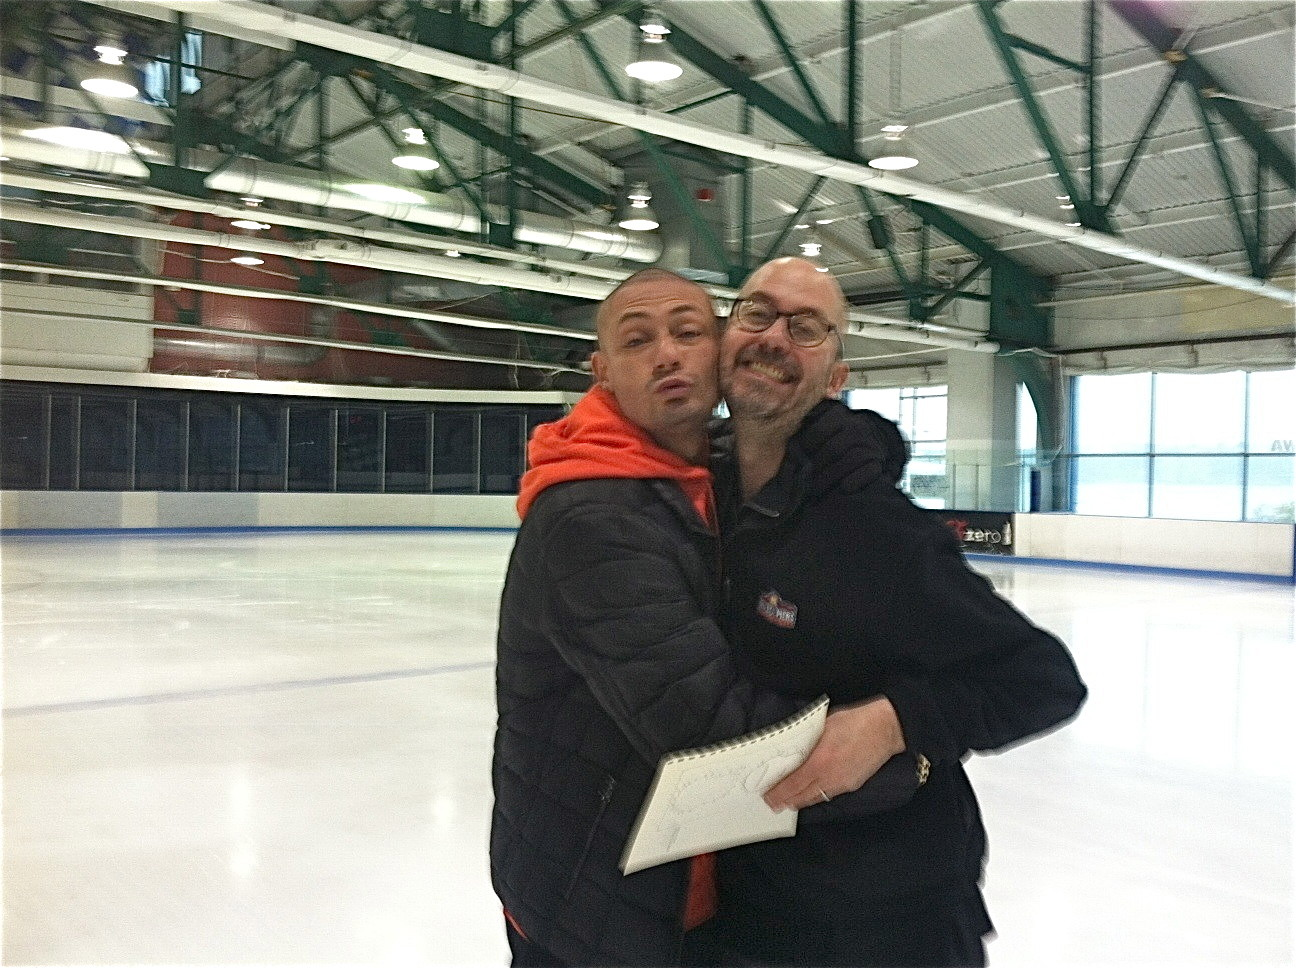 My skating coach and his friend....